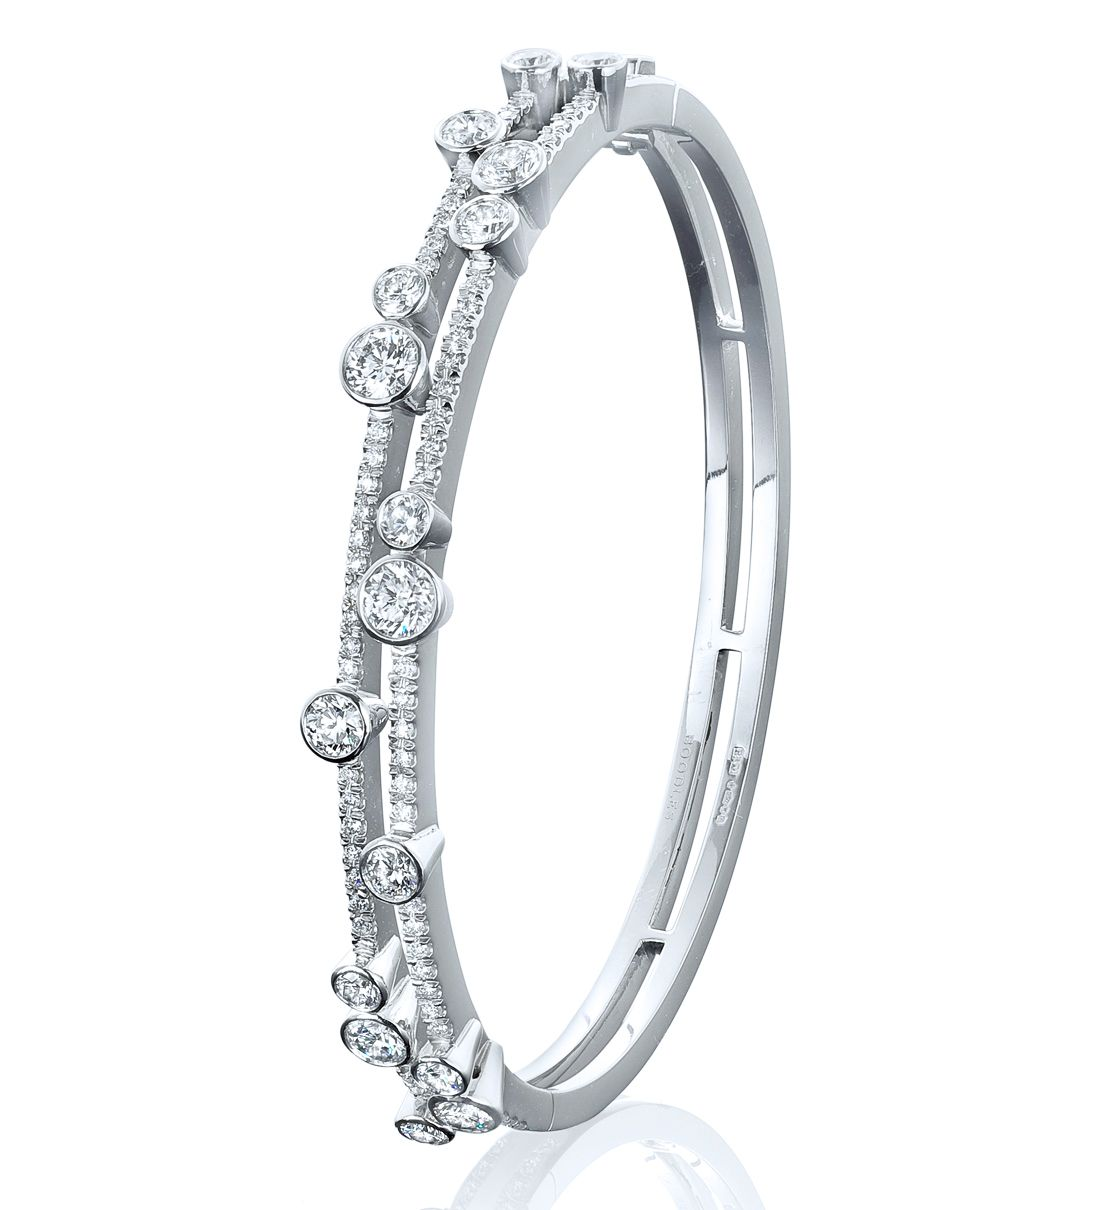 An impressive, elegant bangle from Boodles' Waterfall collection featuring 3.32ct of round-brilliant cut diamonds in platinum.